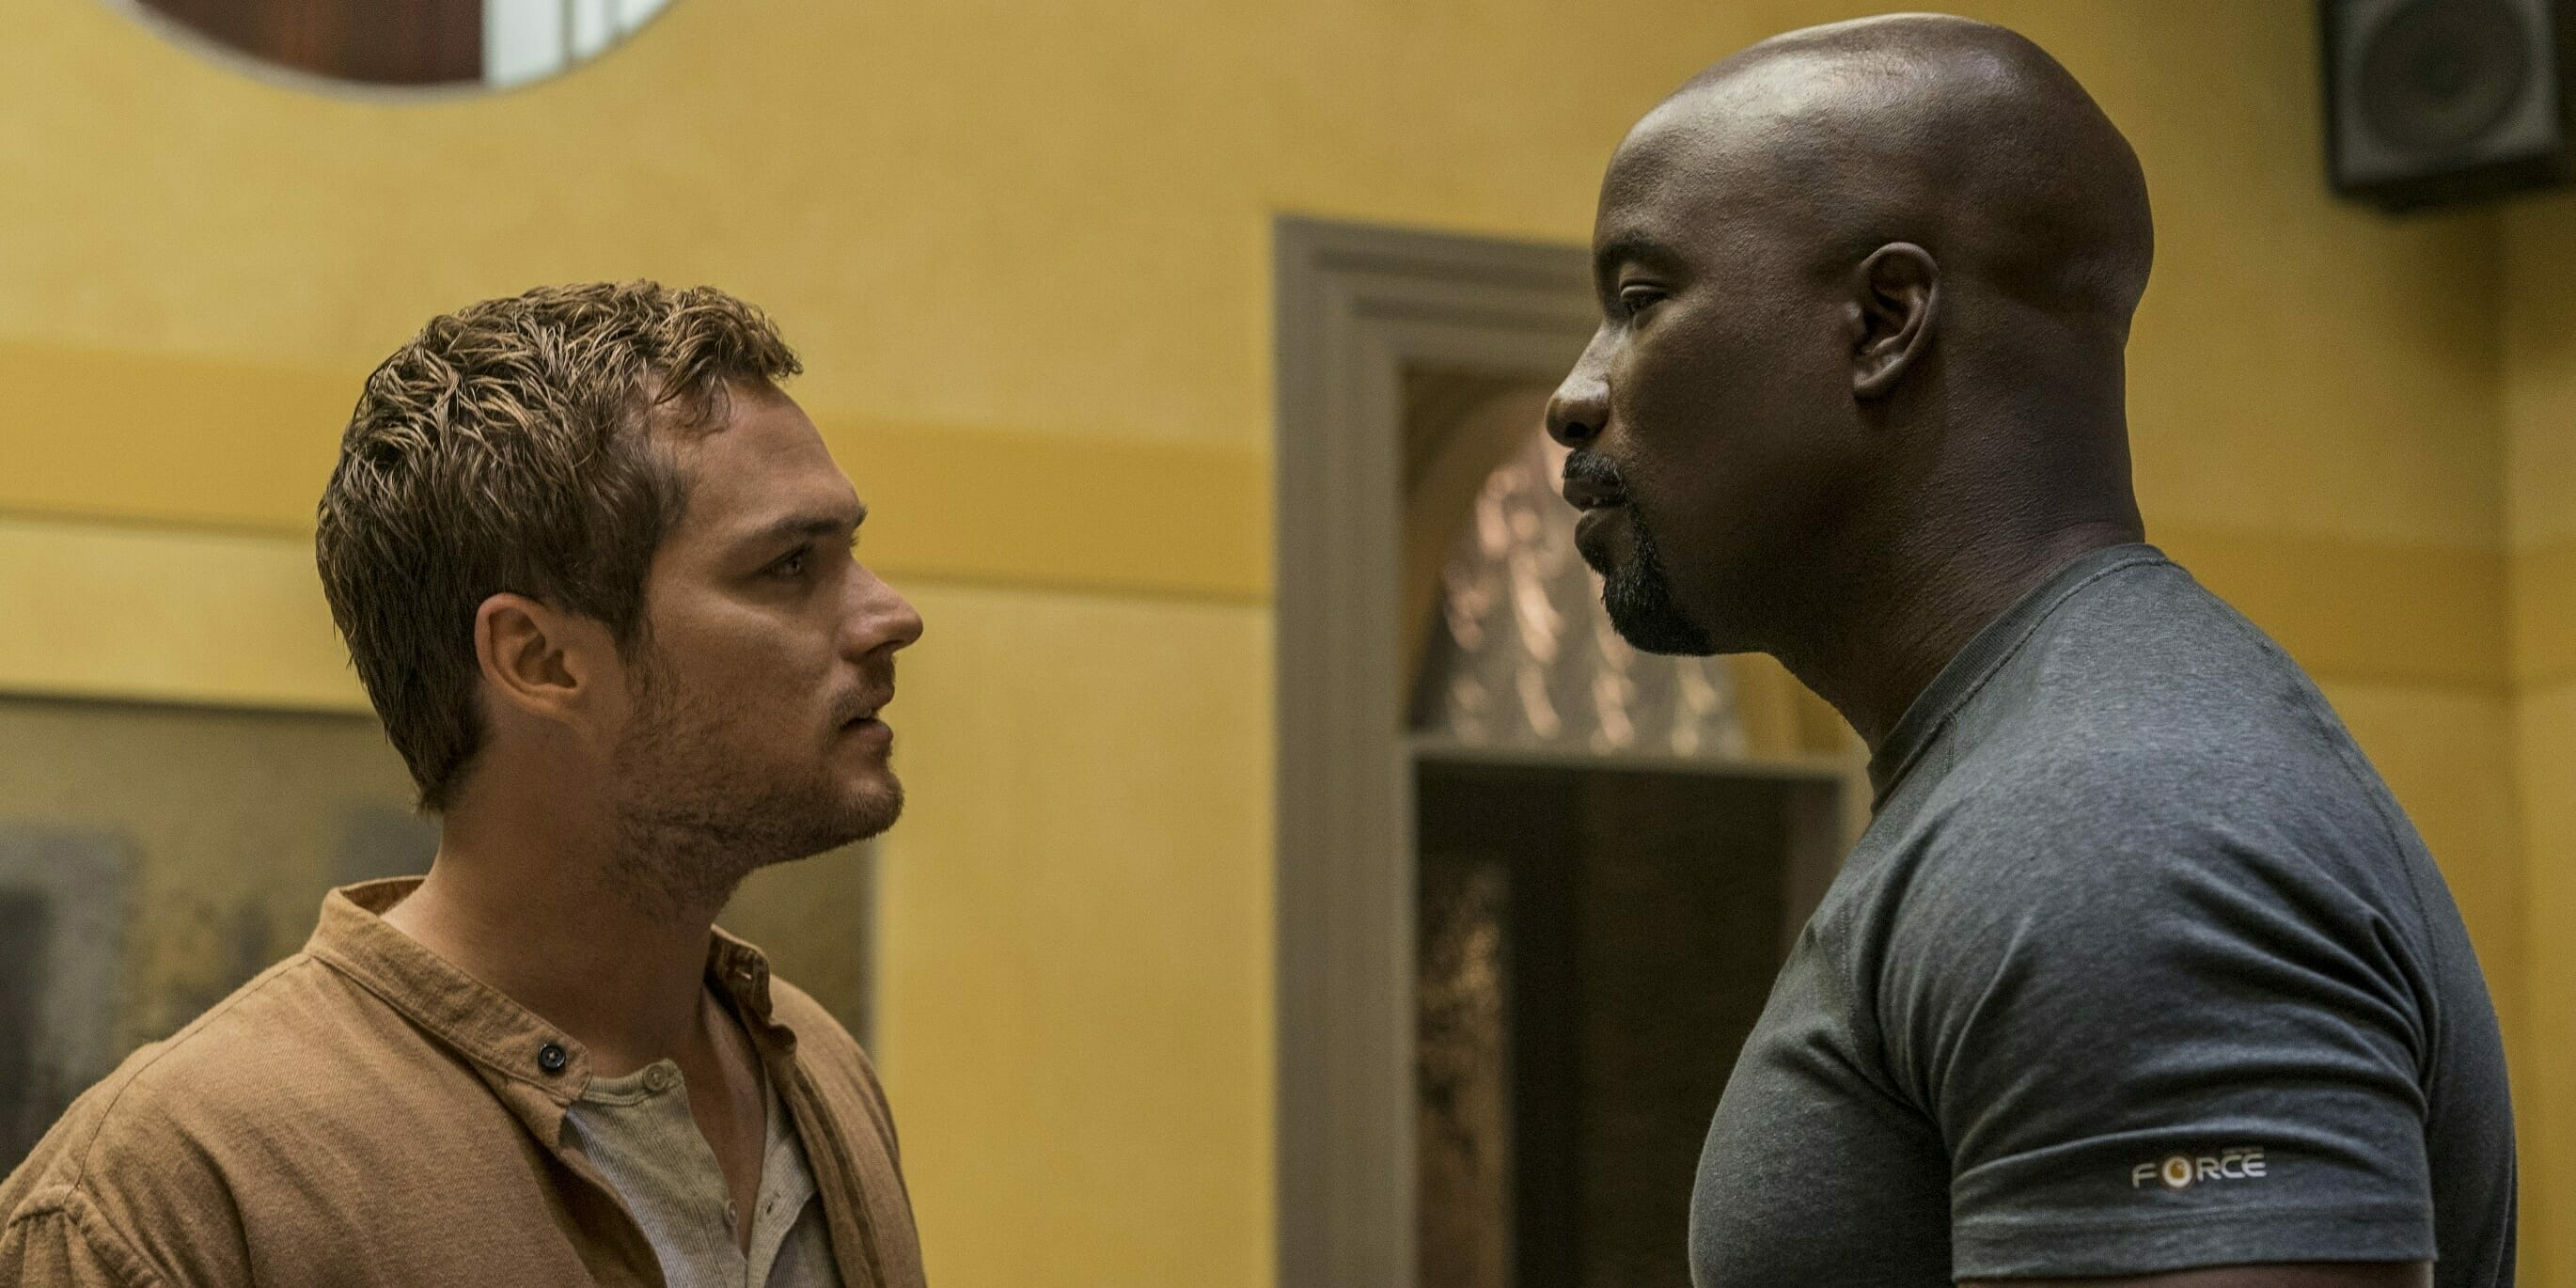 Luke Cage  Season 2 Finally Made Iron Fist Entertaining  Luke Cage  season 2 finally made Iron Fist entertaining